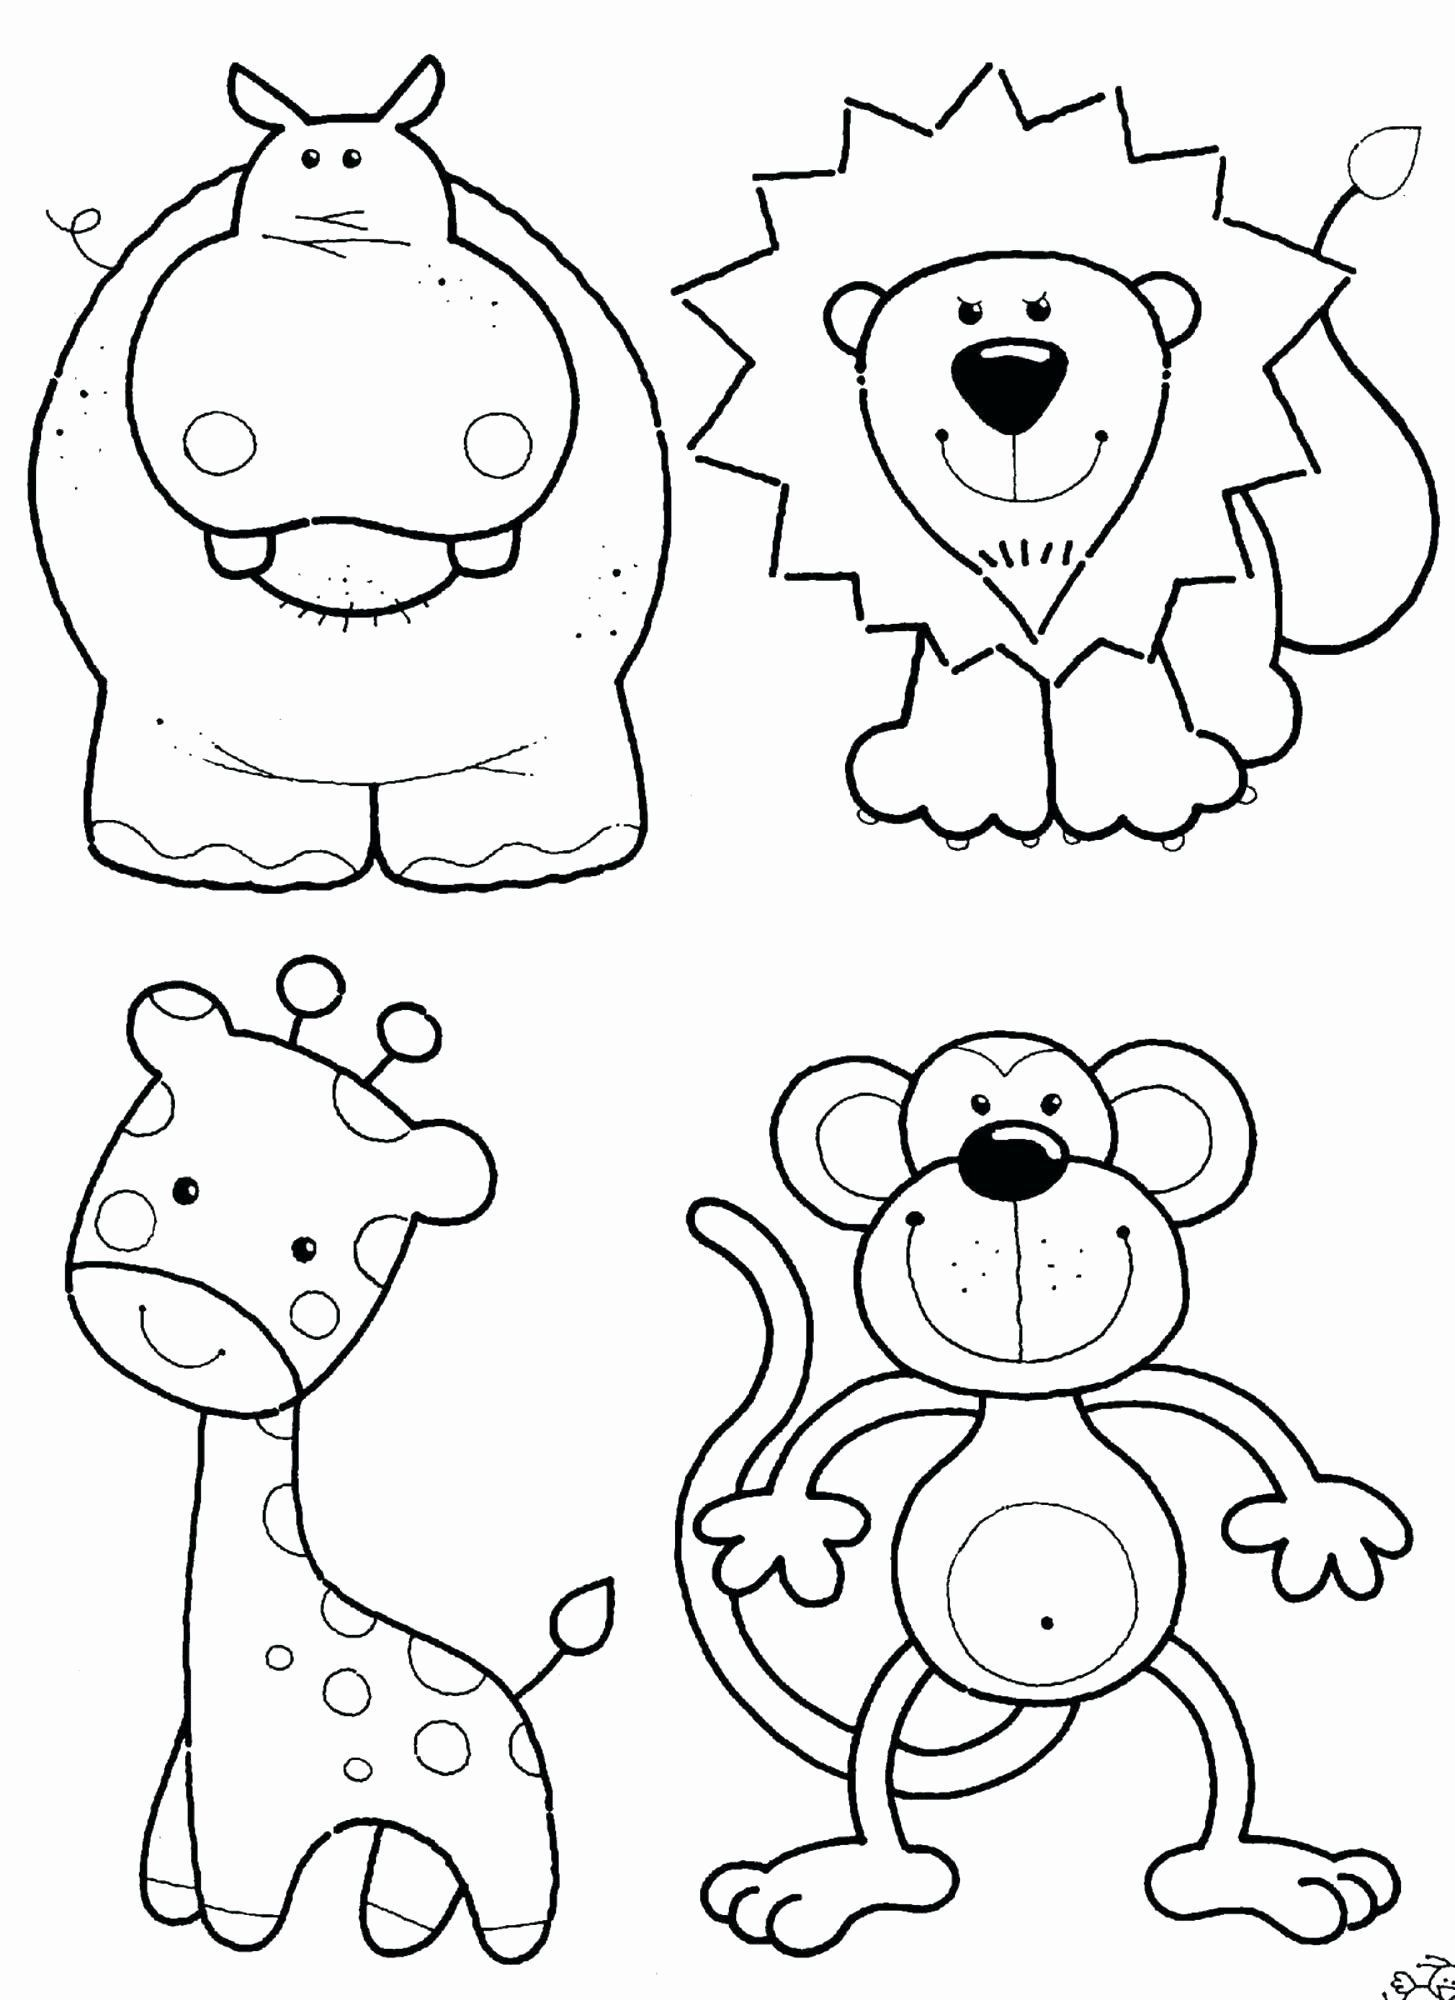 Coloring Pages Of Animals Awesome Animal Coloring Page Coloring Pages Free Printable For Kids In 2020 Animal Coloring Pages Coloring Pages Free Coloring Pages